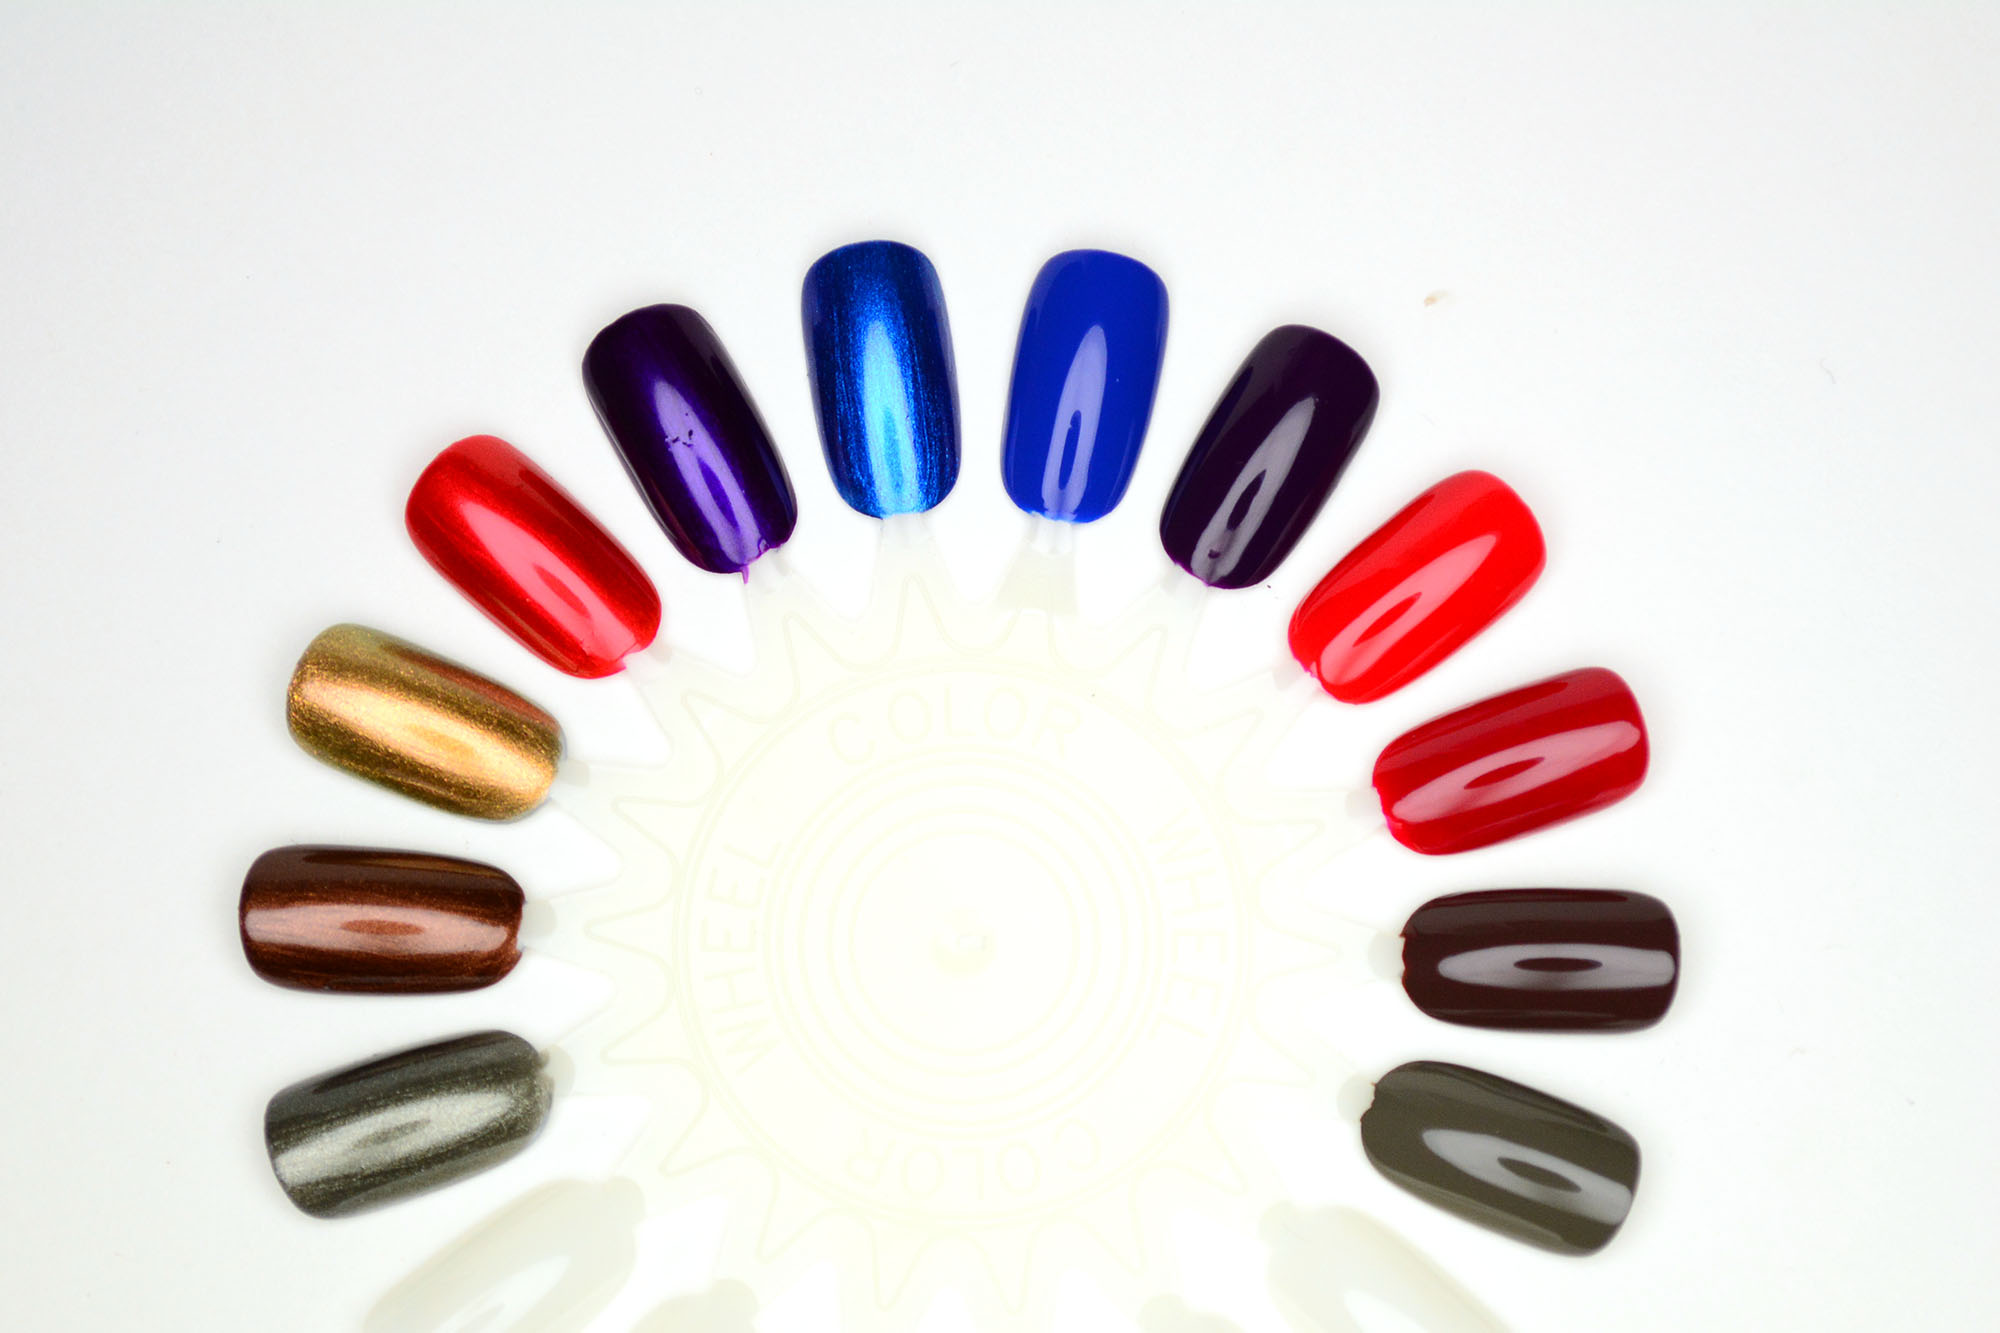 Which Nail Polish is Best? A New Wear Test Series